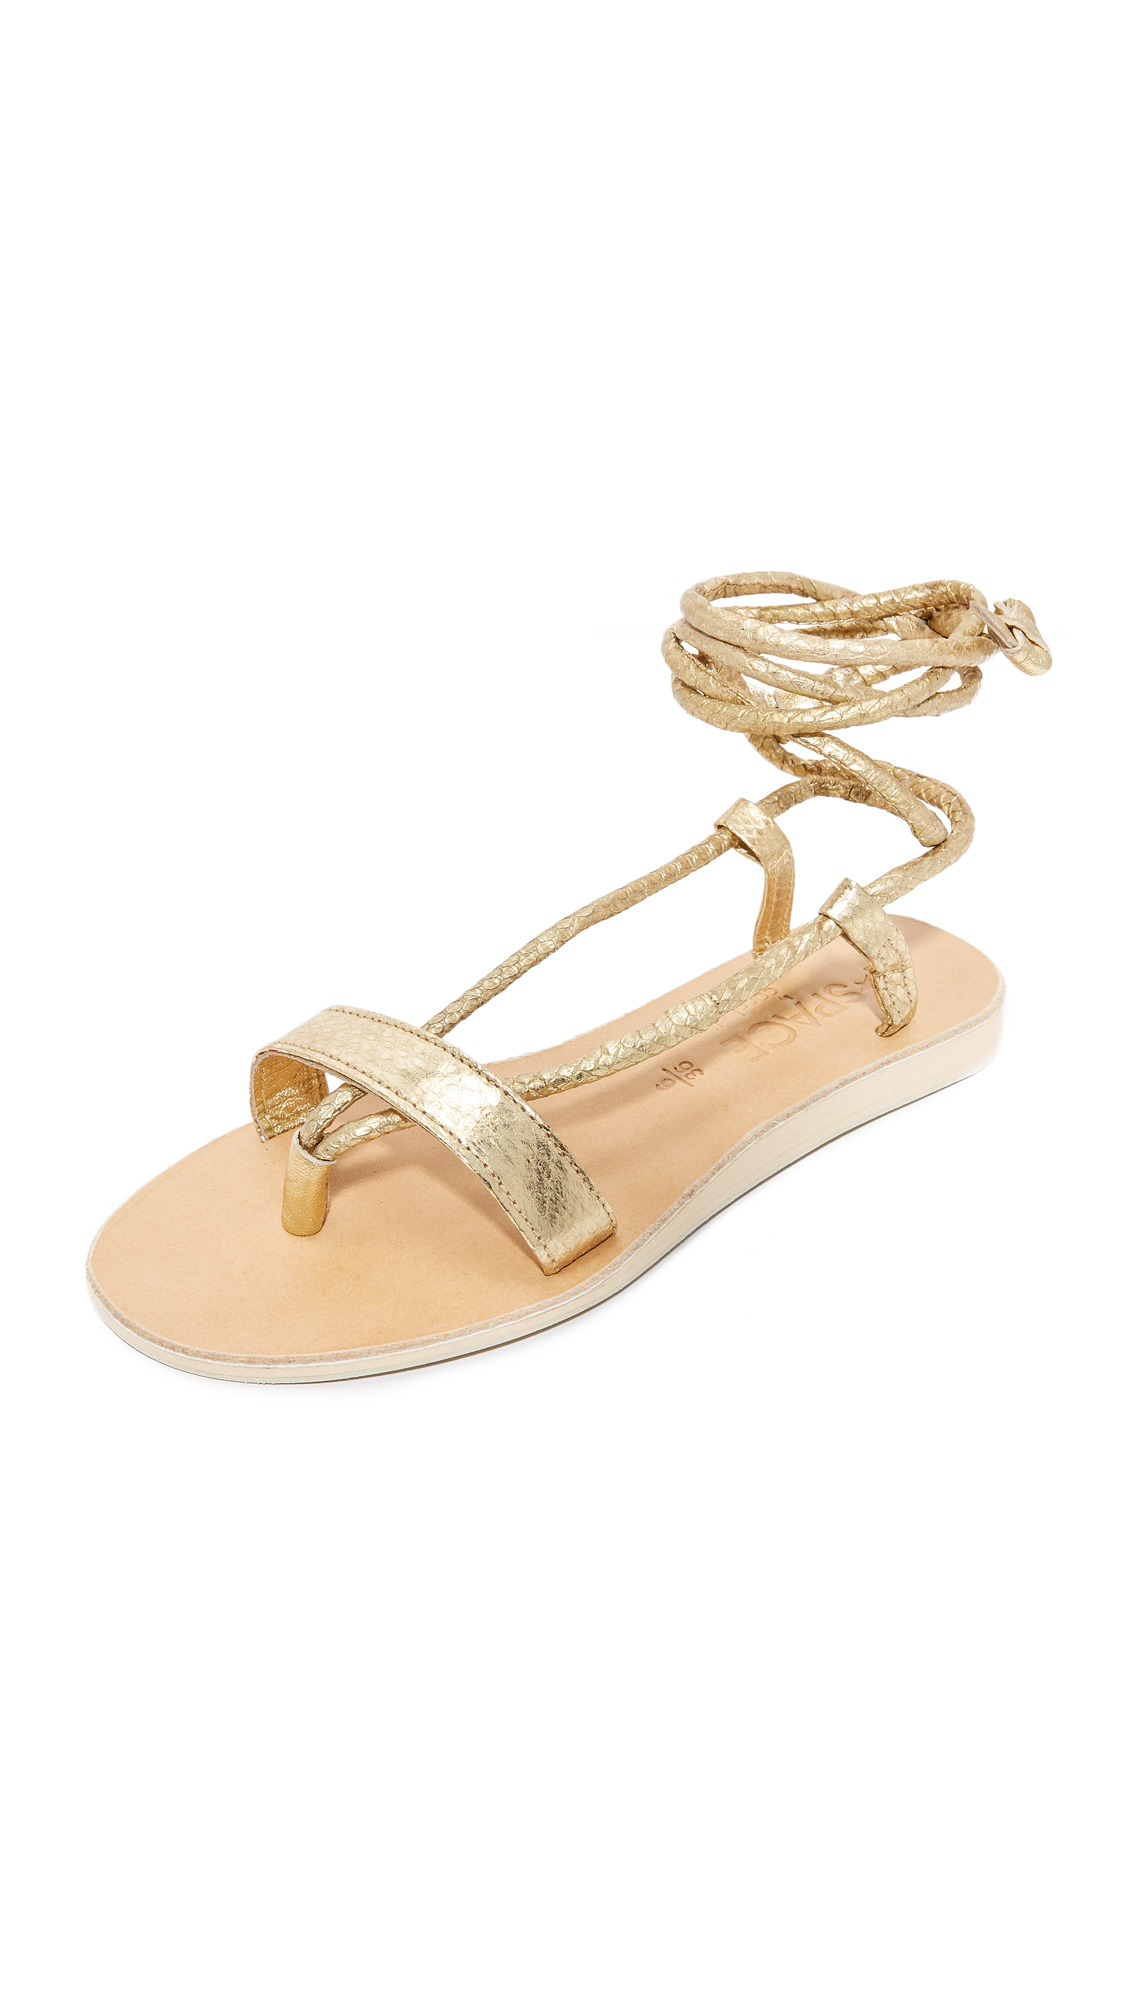 Cocobelle x L*Space Rio Sandals - Gold